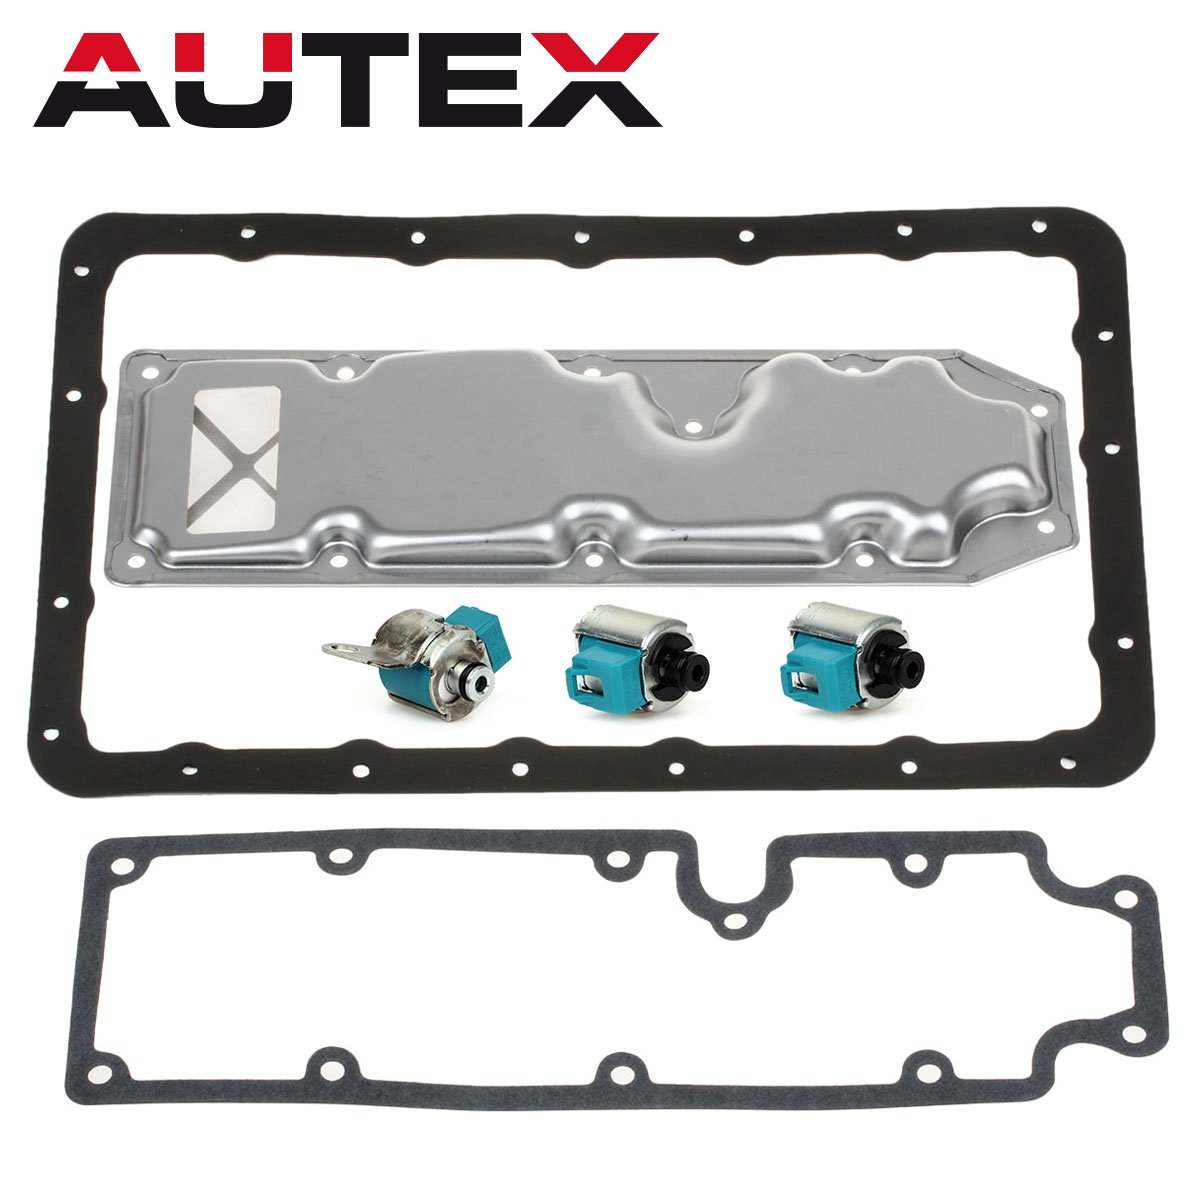 AUTEX A340H AW30-80LE Transmission Shift Master TCC Lock Up Solenoid Control Valve with Pan Filter Gasket Kit Compatible With 85-94 Toyota Pick-up T100 Isuzu Trooper Mitsubishi Montero